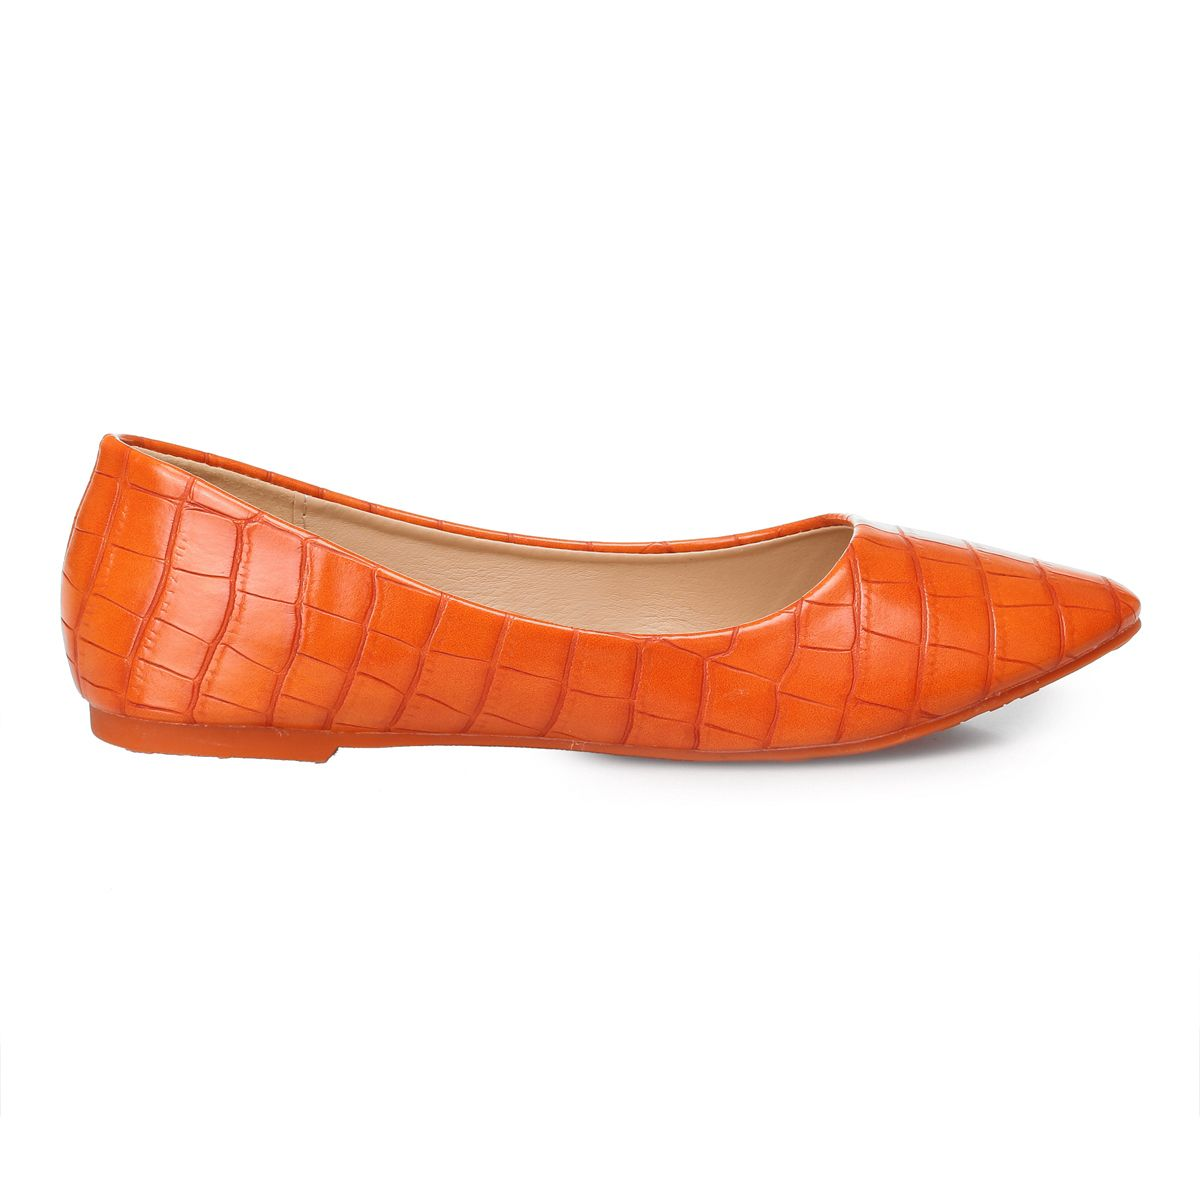 Ballerines oranges à effet croco pointues